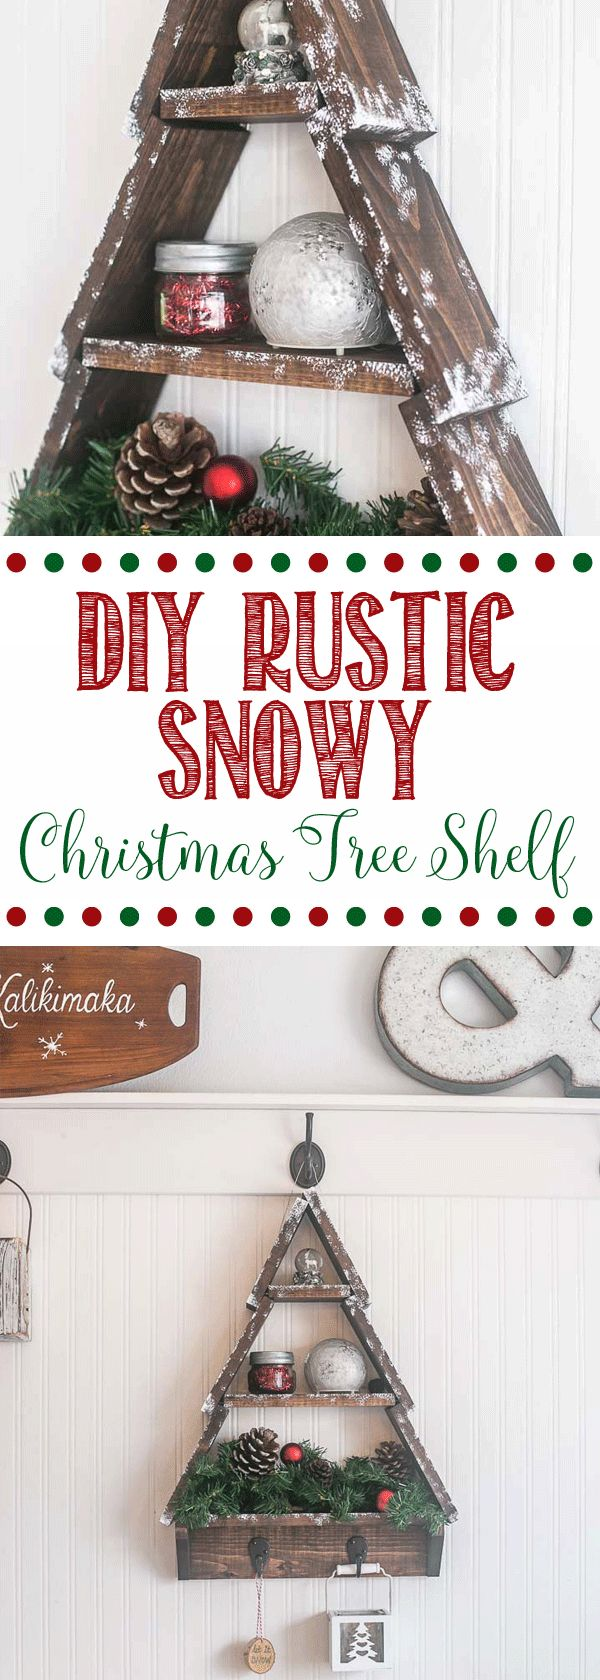 DIY Snowy Rustic Christmas Tree Shelf -- This is a great little wood working project that I know I am definitely going to LOVE this year. I love all things DIY and projects for the holidays are so great to bring a little bit of cheer to your home decor!